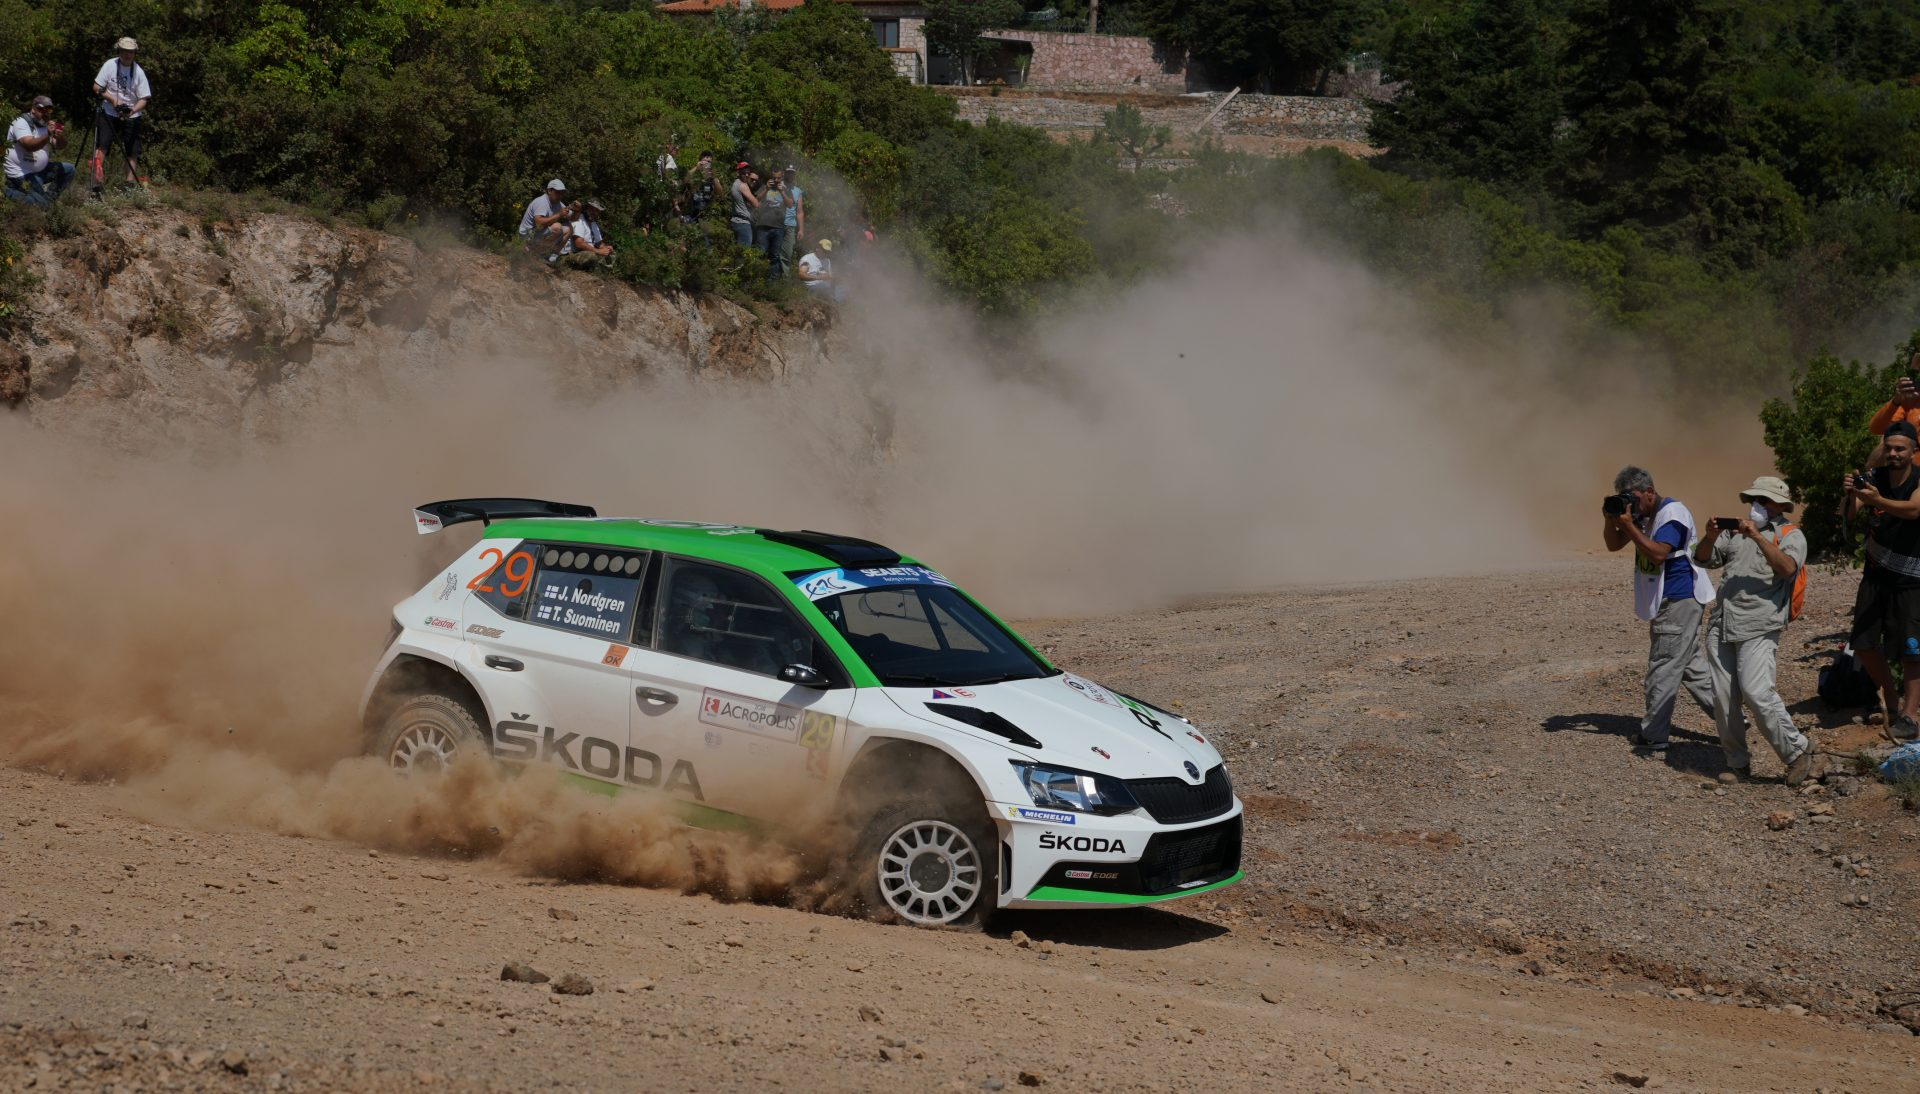 Rally Acropolis 2018: Latest News and Results